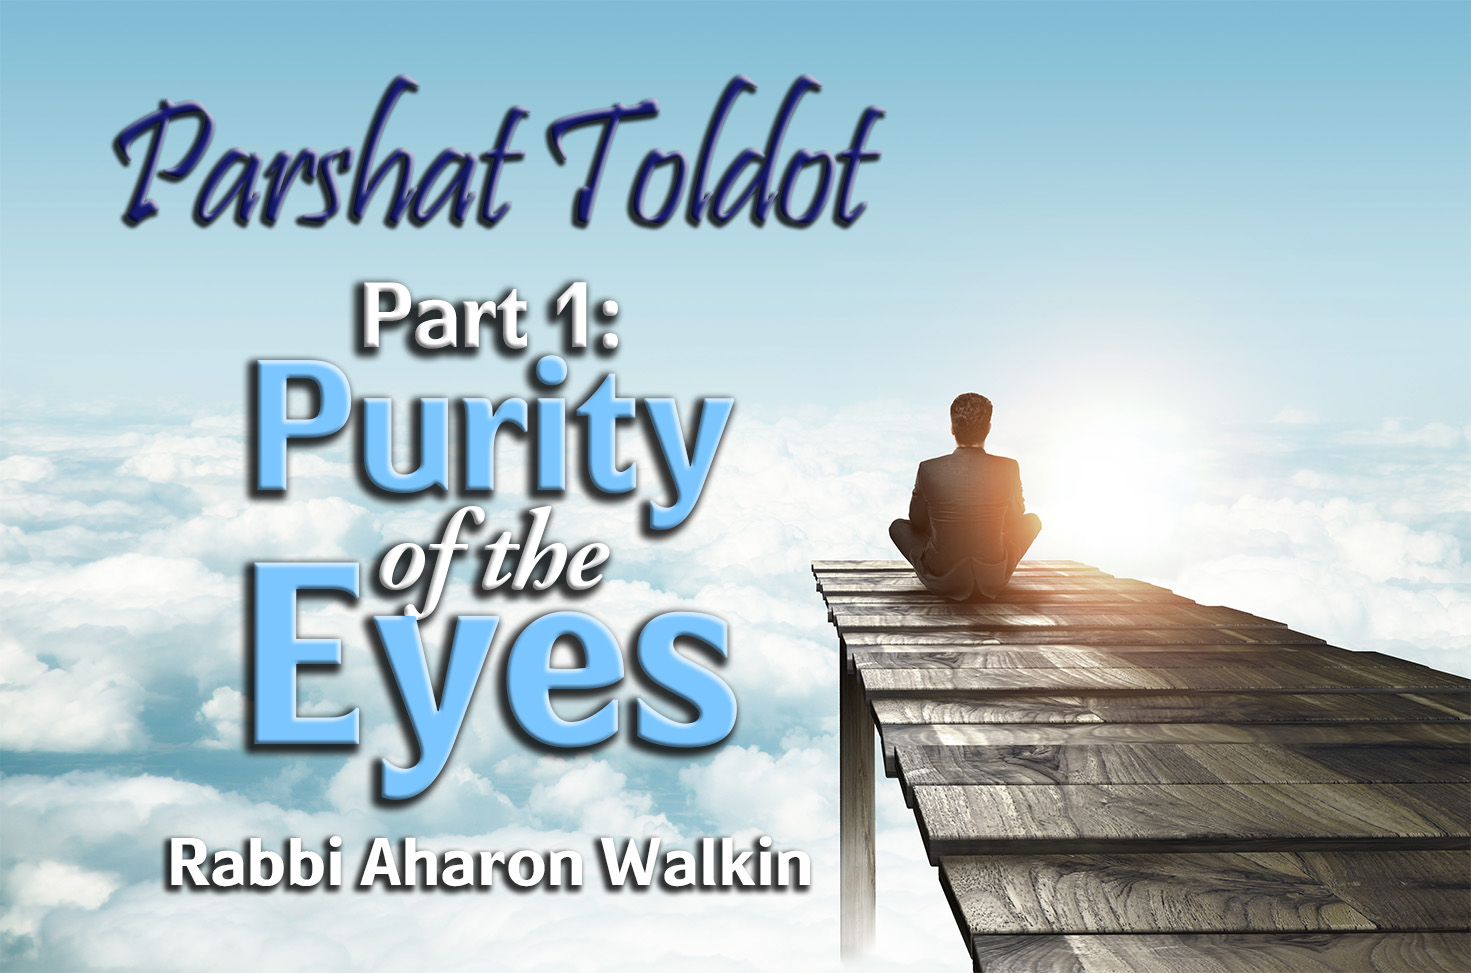 Photo of Parshat Toldot – Part 1 – Purity of the Eyes